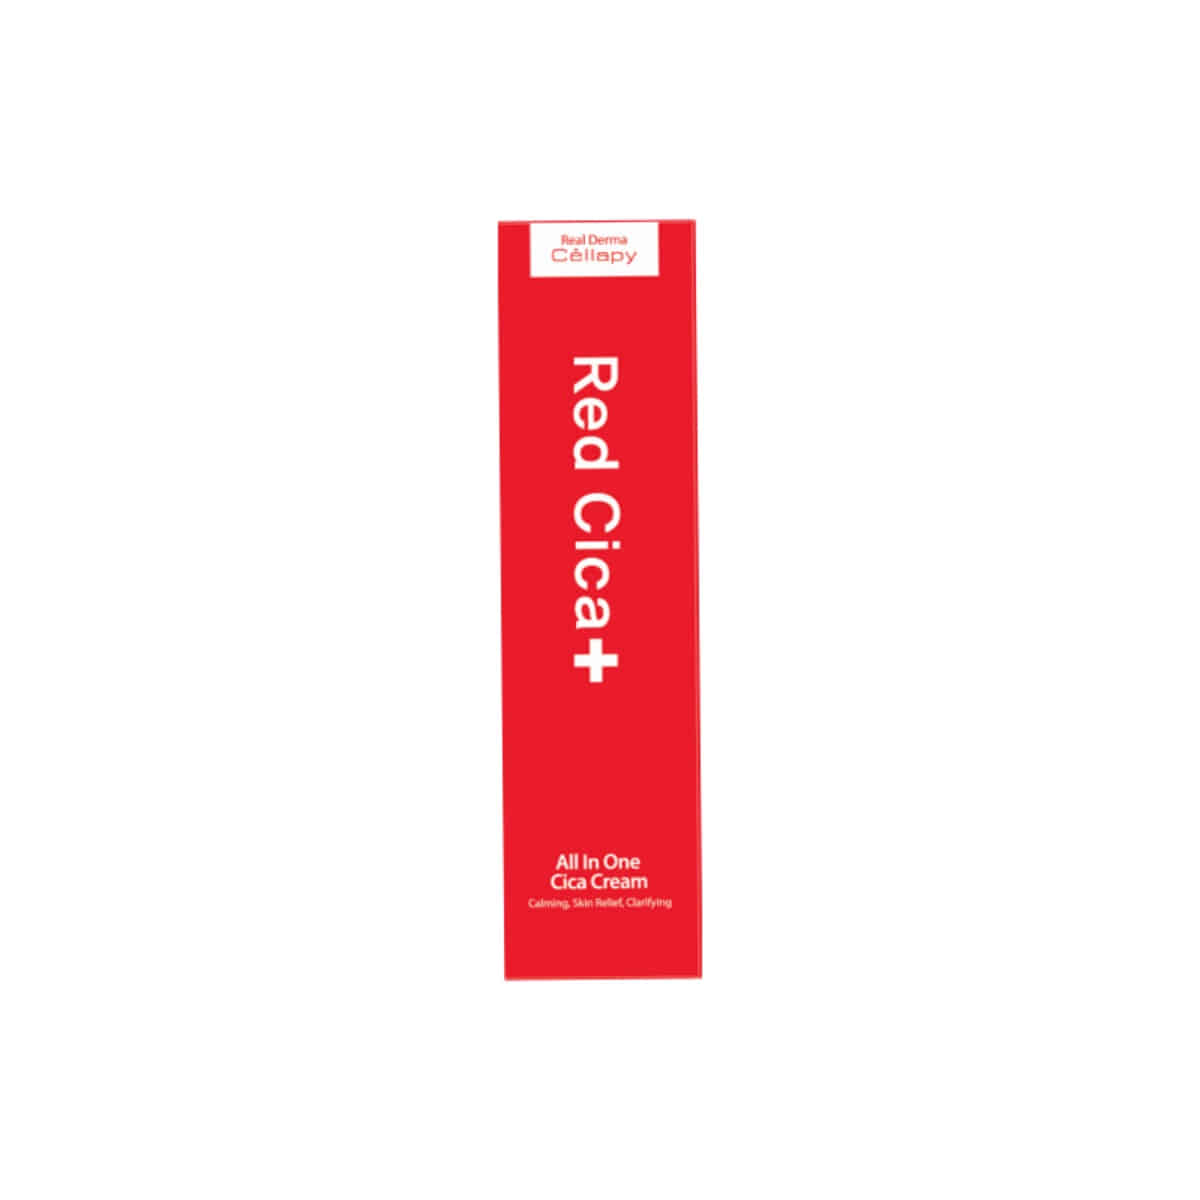 Real Derma Cellapy Red Cica All In One Cica Cream